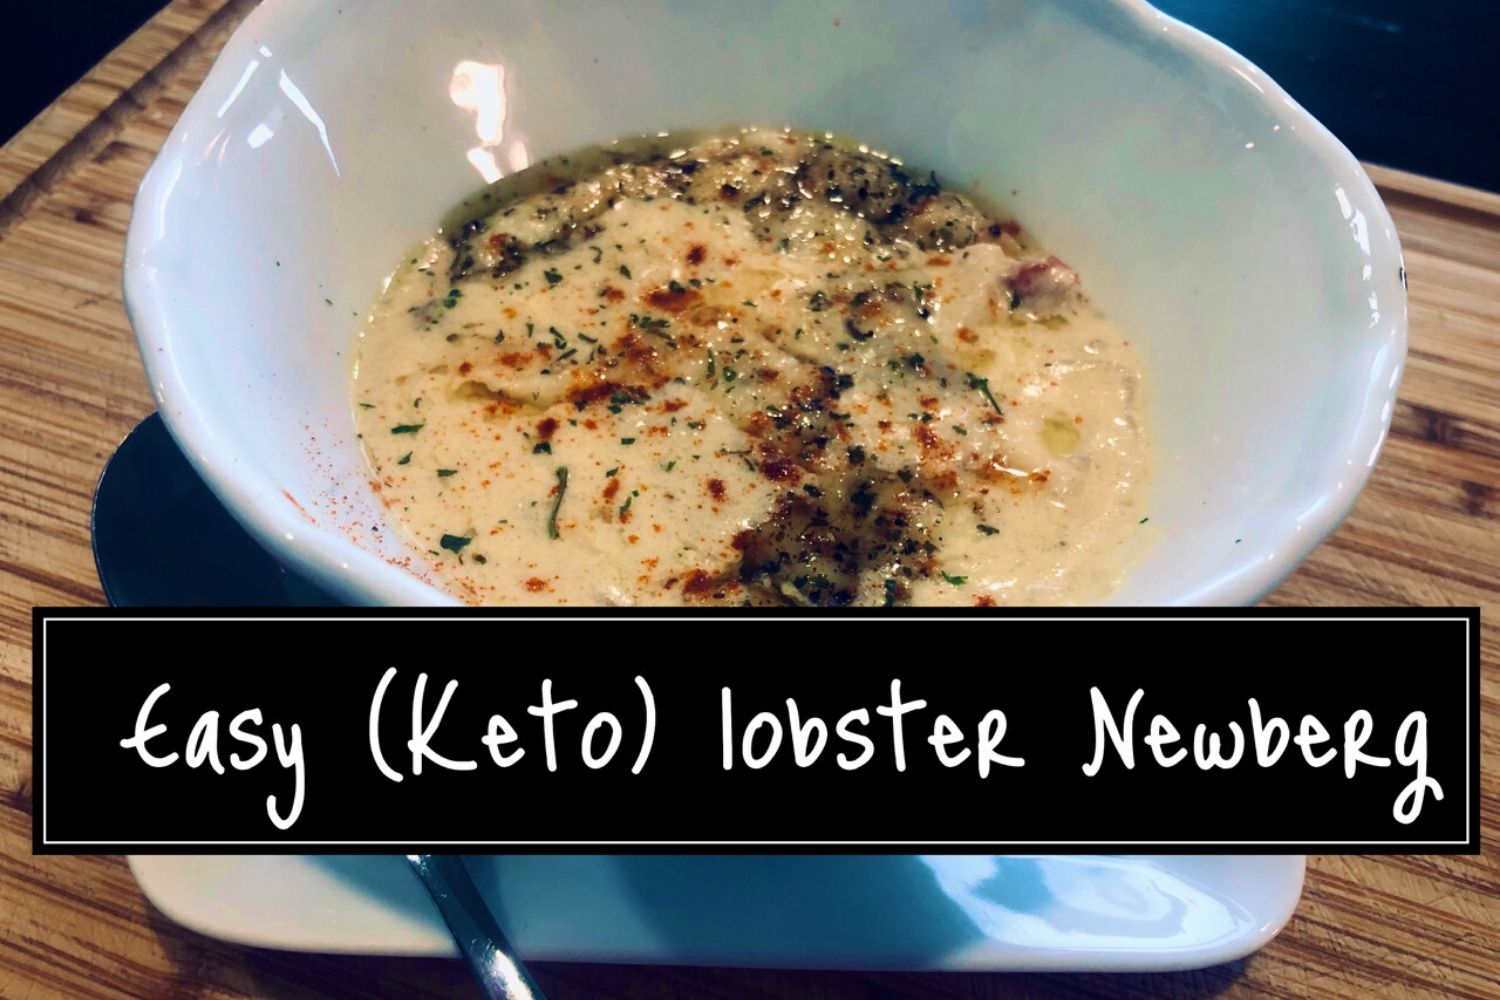 easy lobster newborn keto in the country